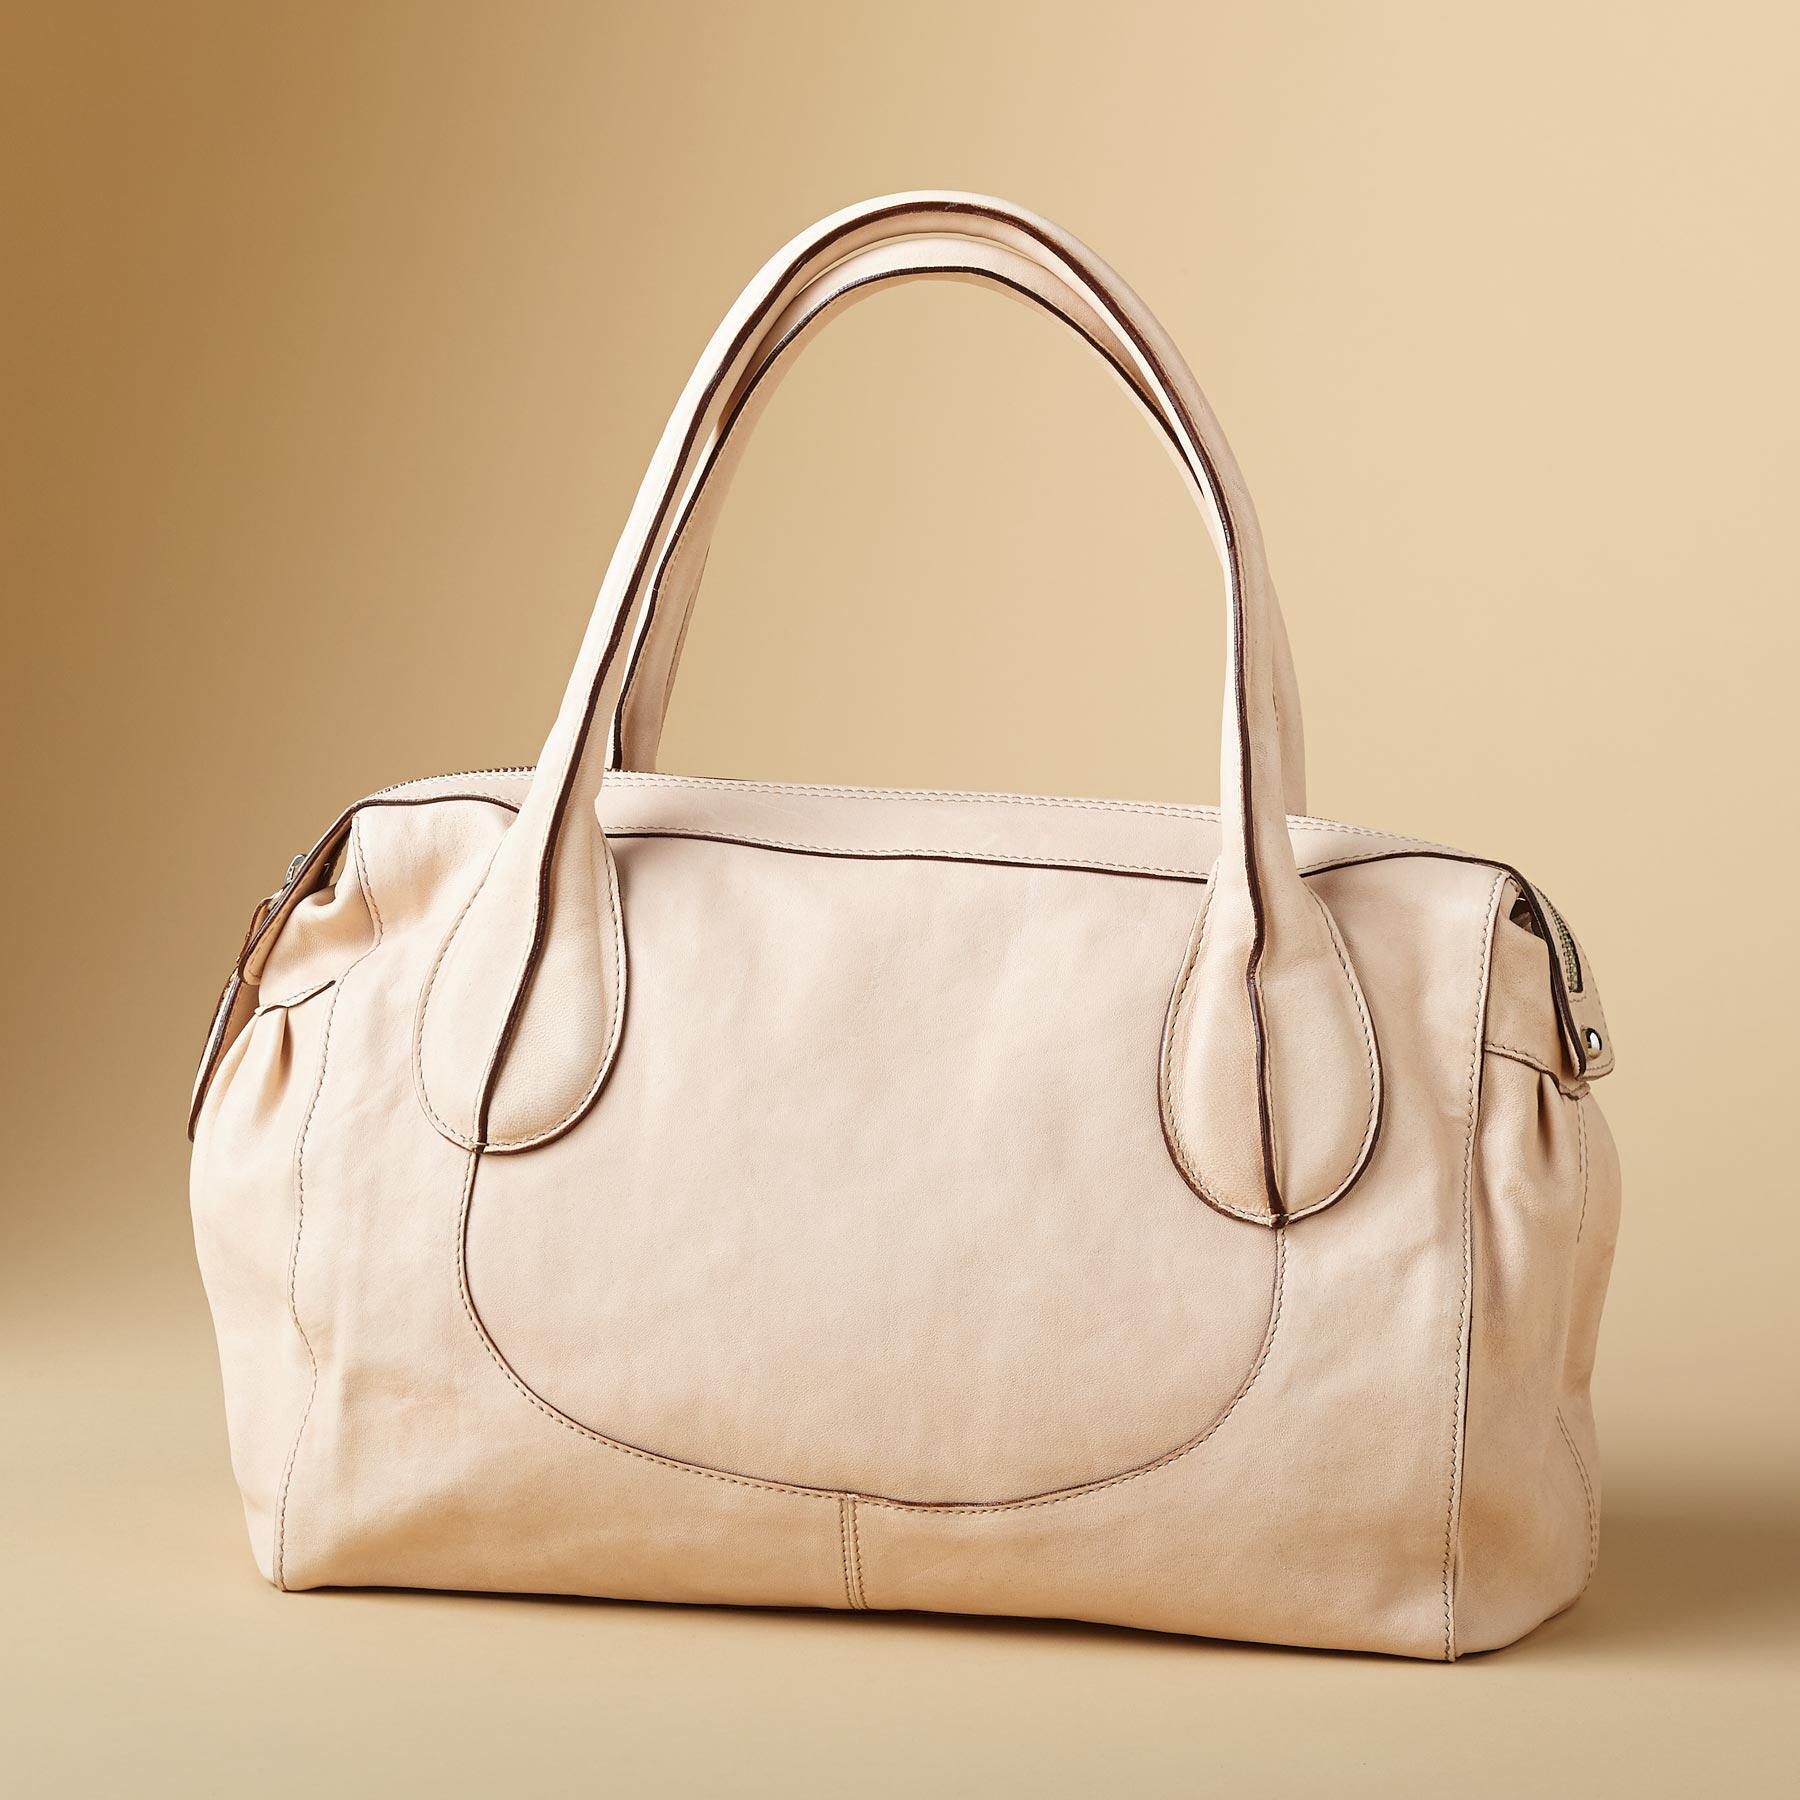 SIMPLY STYLISH HANDBAG: View 1